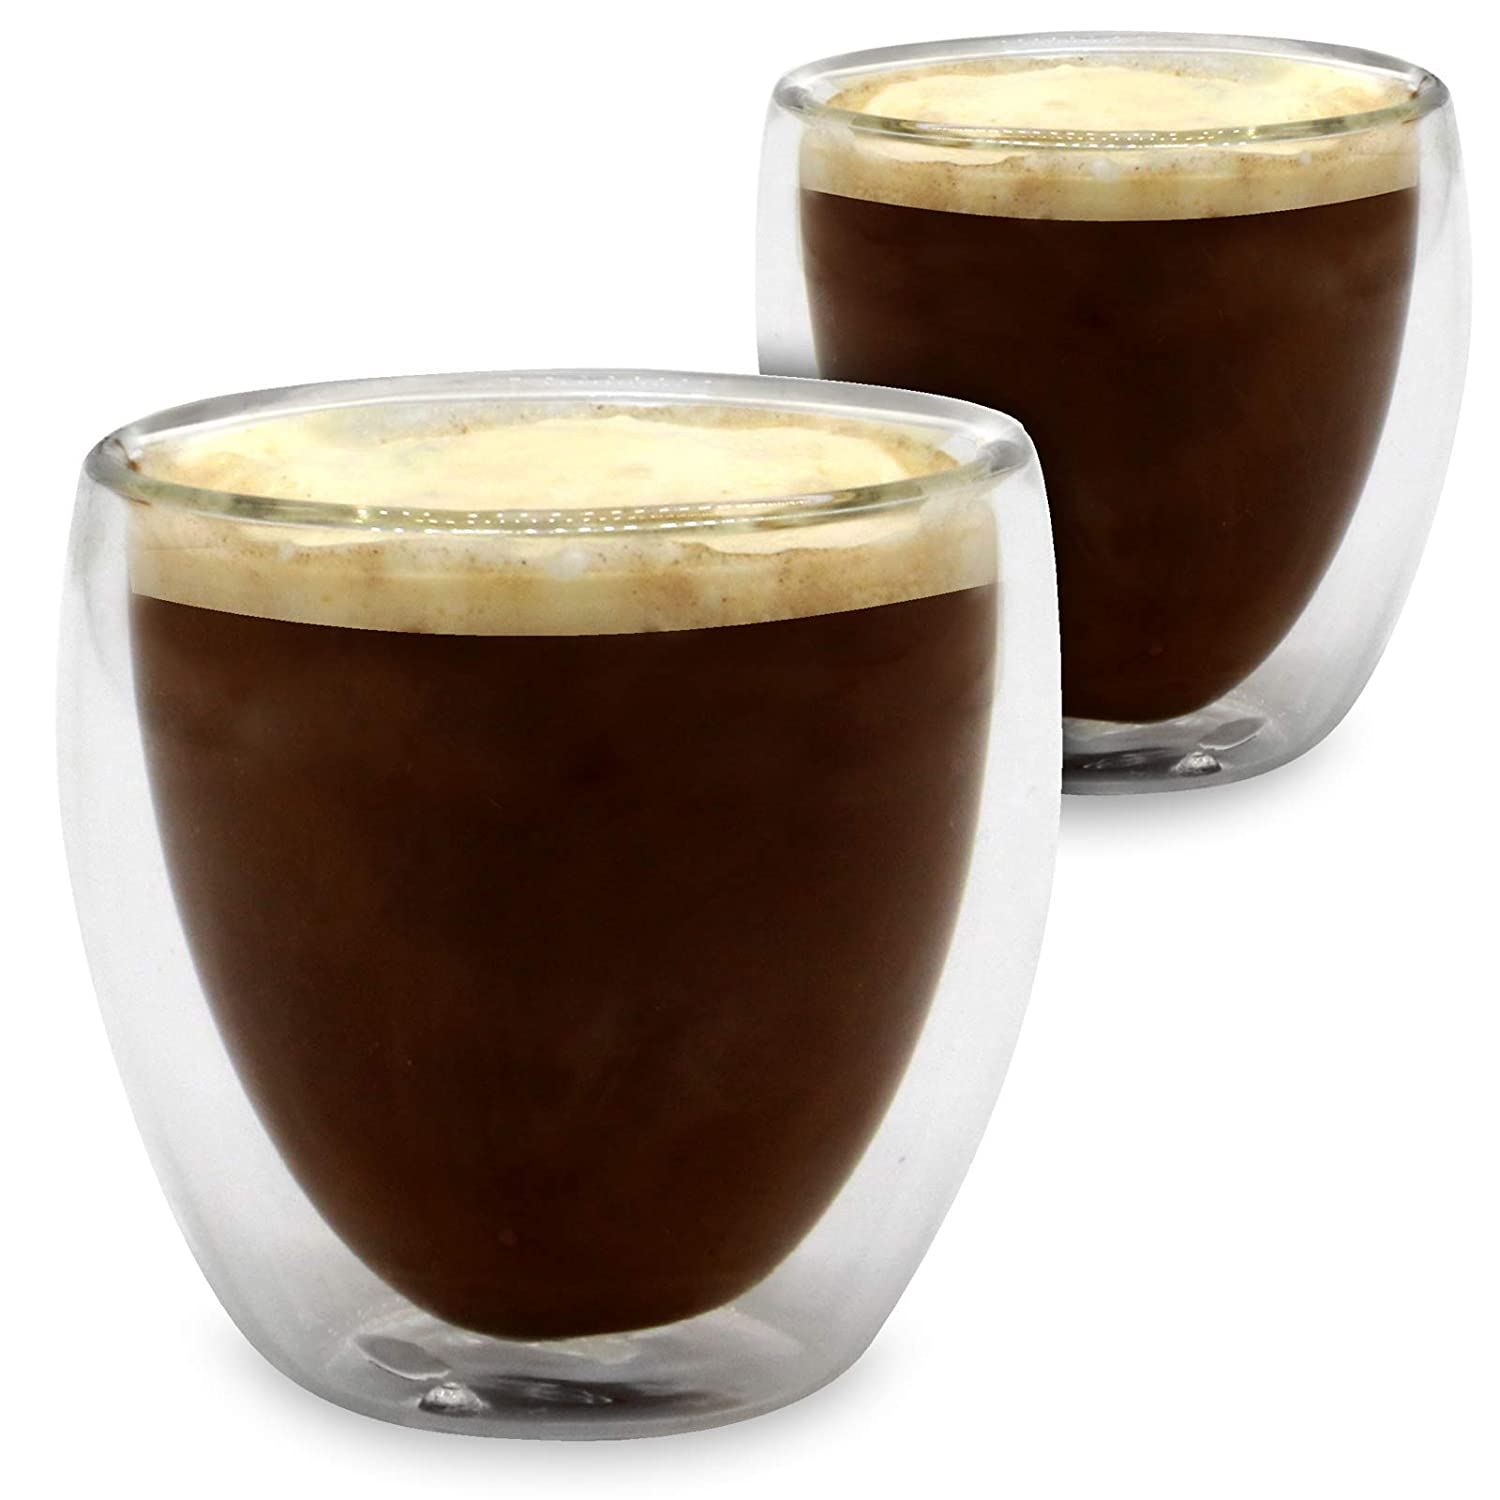 Double Walled Insulated Glass Mugs | Heat Resistant Thermal Coffee Cup | For Hot & Cold Drinks | Coffee, Tea, Espresso, Cappuccino, Latte | M&W Set of 2 - 80ml Xbite